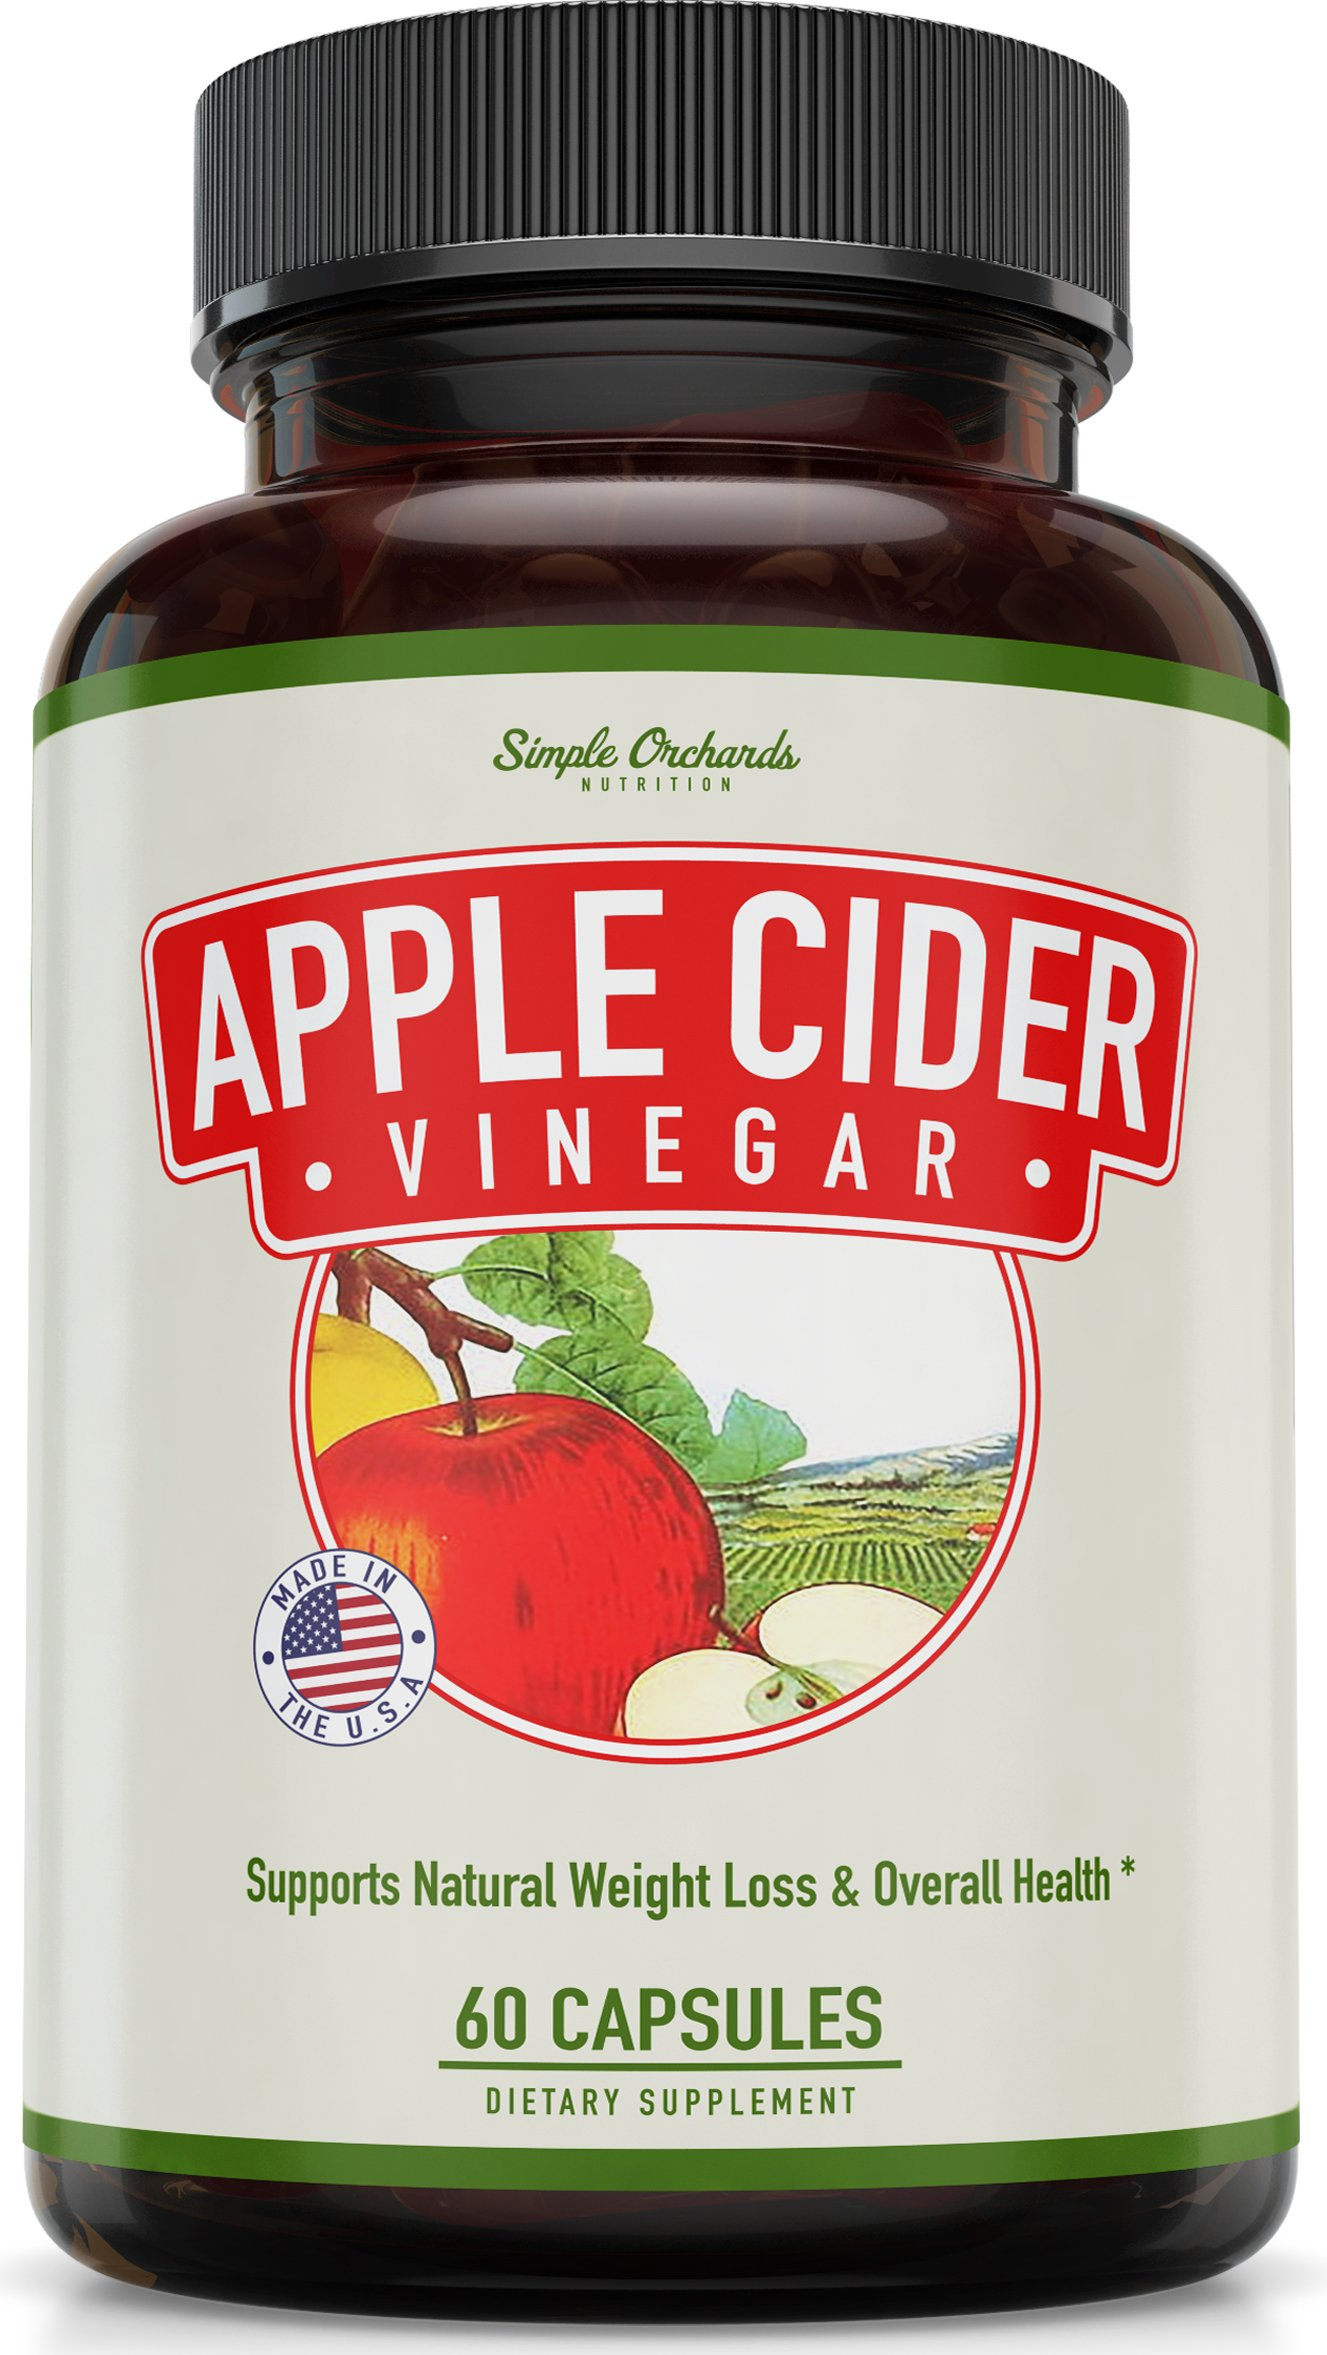 Apple Cider Vinegar Pills for Natural Weight Loss - Extra Strength Capsules - Control Your Appetite and Boost Energy Levels, Perfect Thermogenic Fat Burner, Enhances All Diets